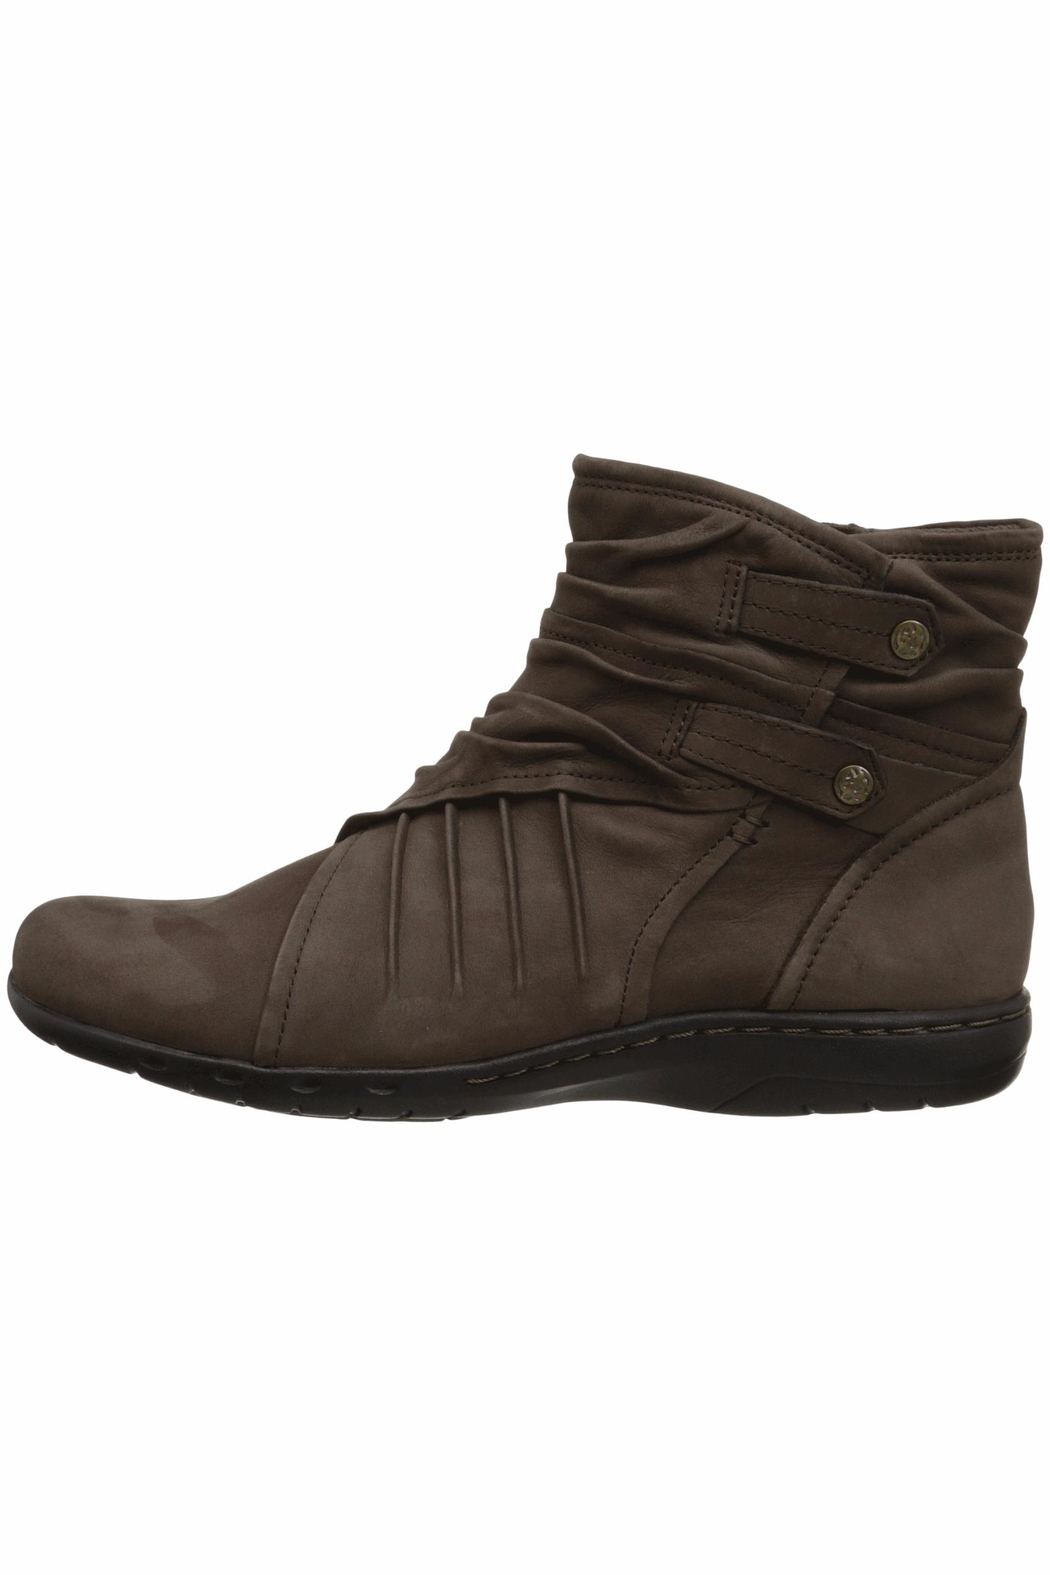 Cobb Hill Comfort Walking Booties - Front Cropped Image